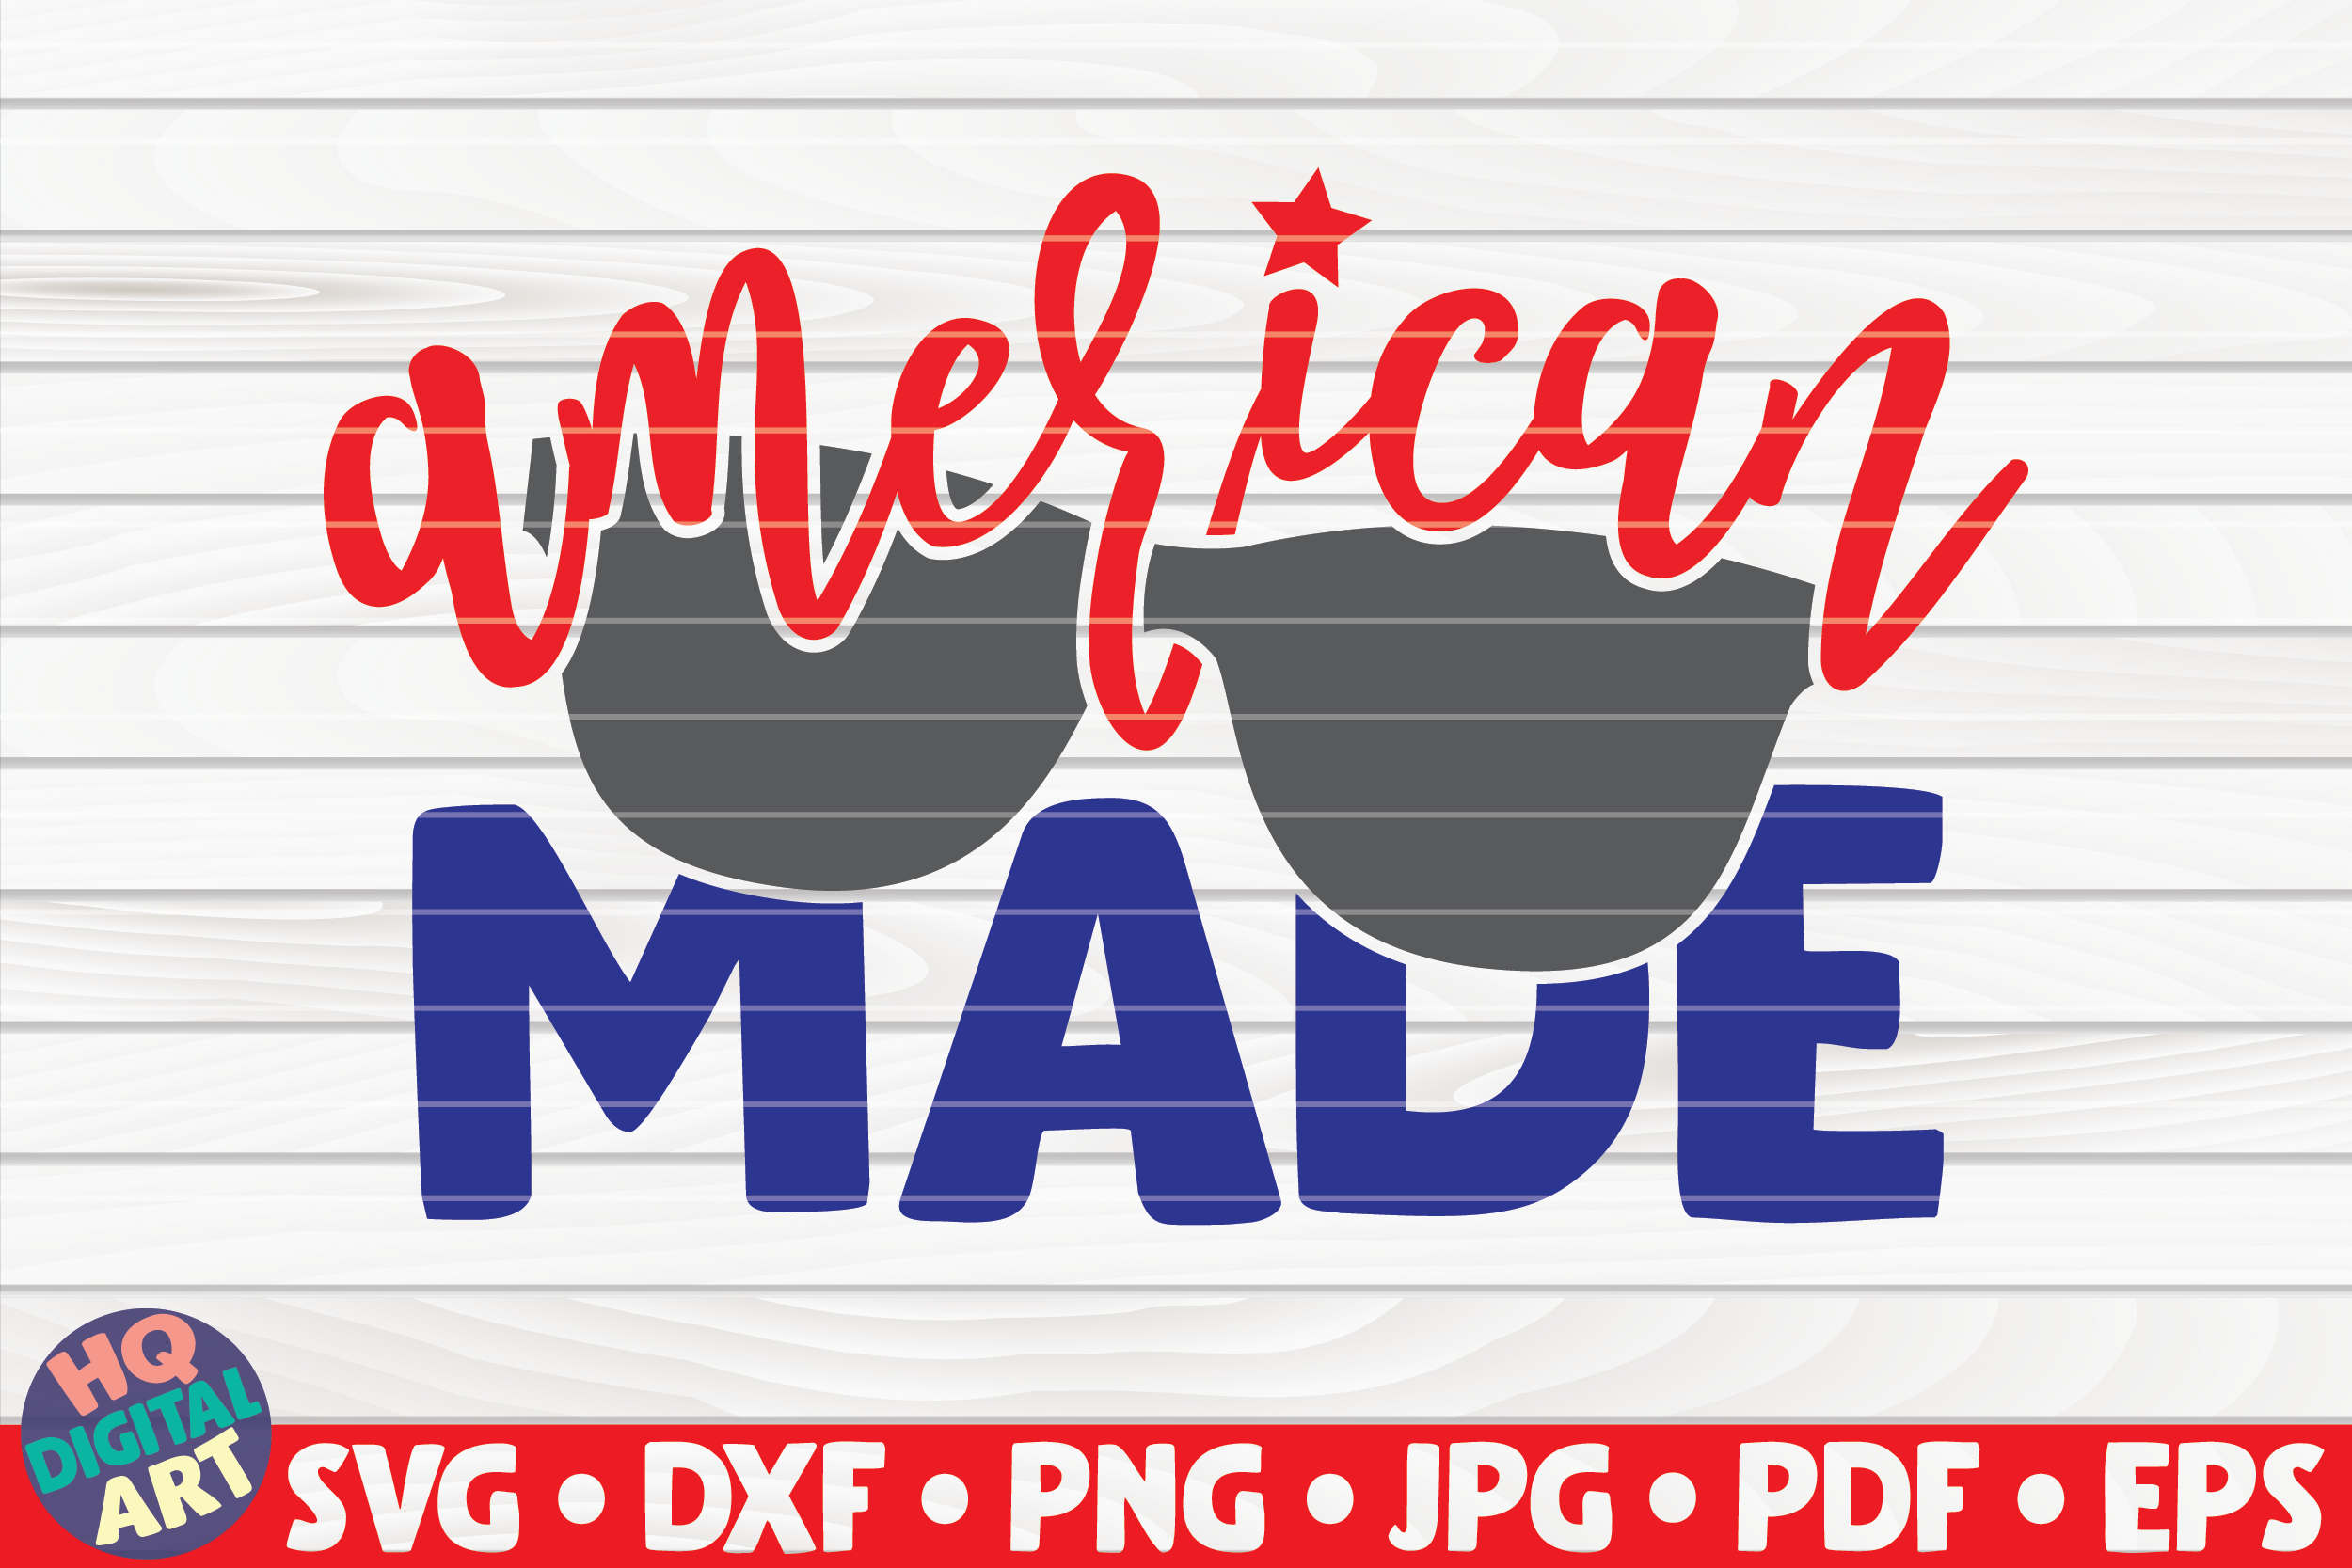 Download Free American Made 4th Of July Quote Graphic By Mihaibadea95 for Cricut Explore, Silhouette and other cutting machines.